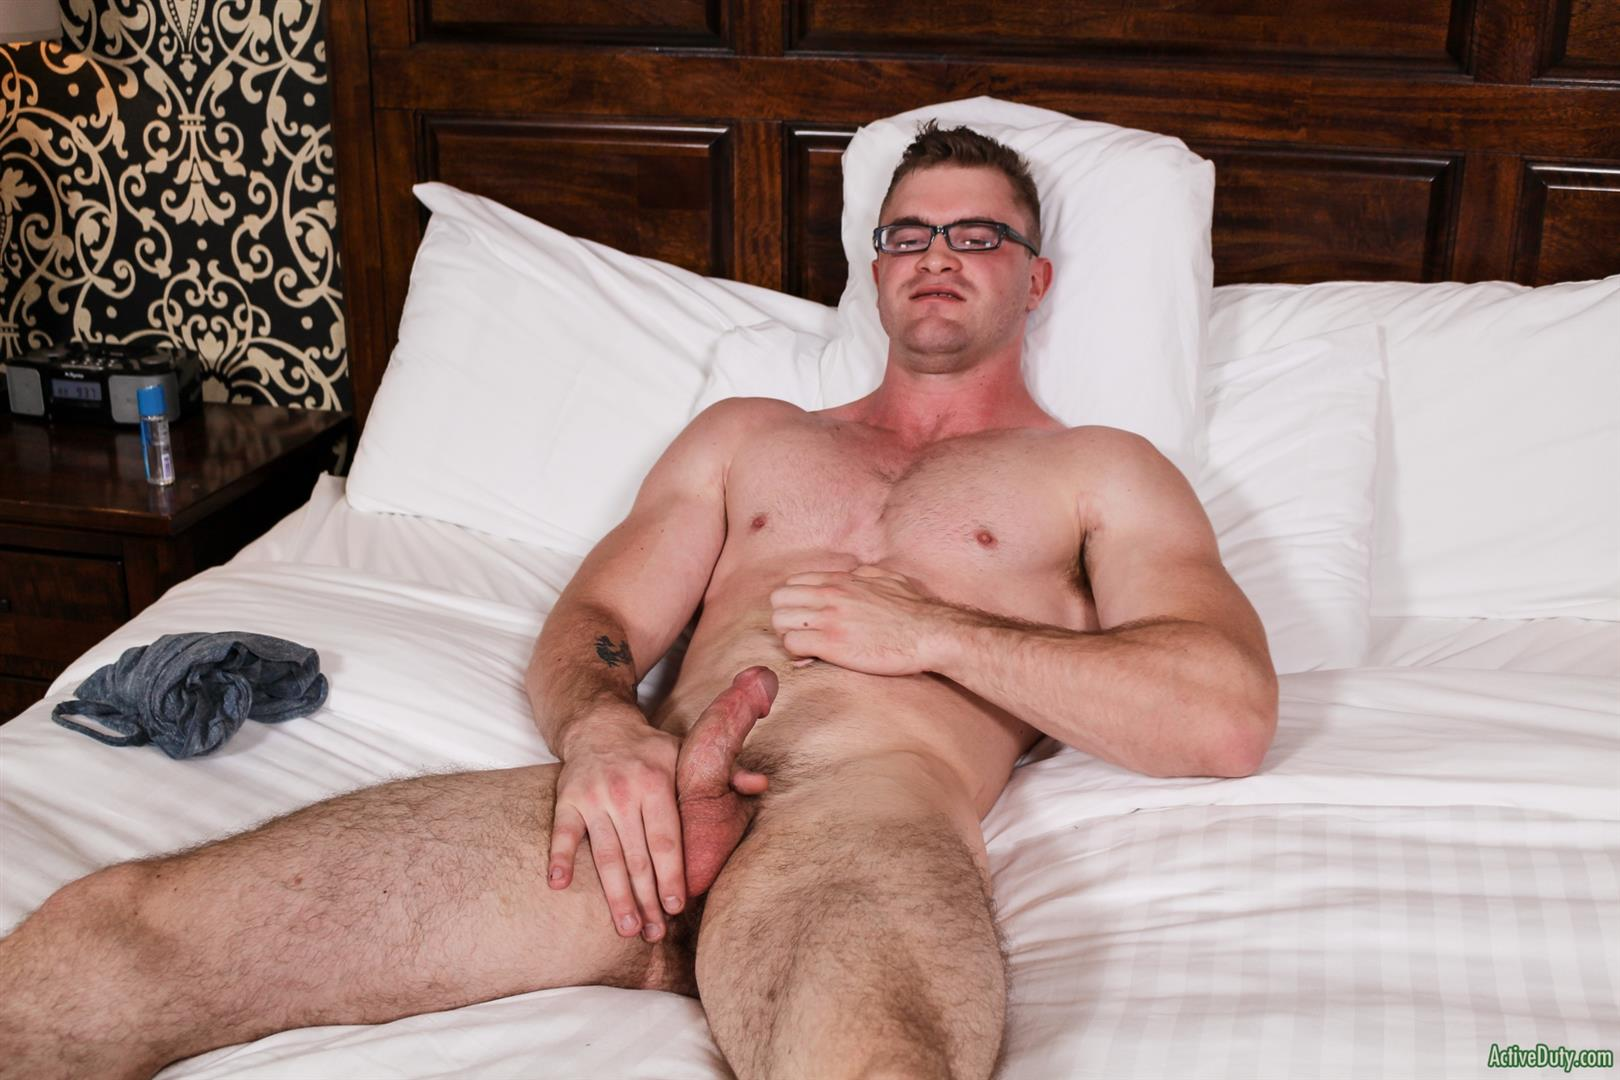 Active-Duty-Scott-Ambrose-Muscle-Naked-Marine-Jerking-Off-Amateur-Gay-Porn-12 Hairy Muscular American Marine Jerks His Thick Cock